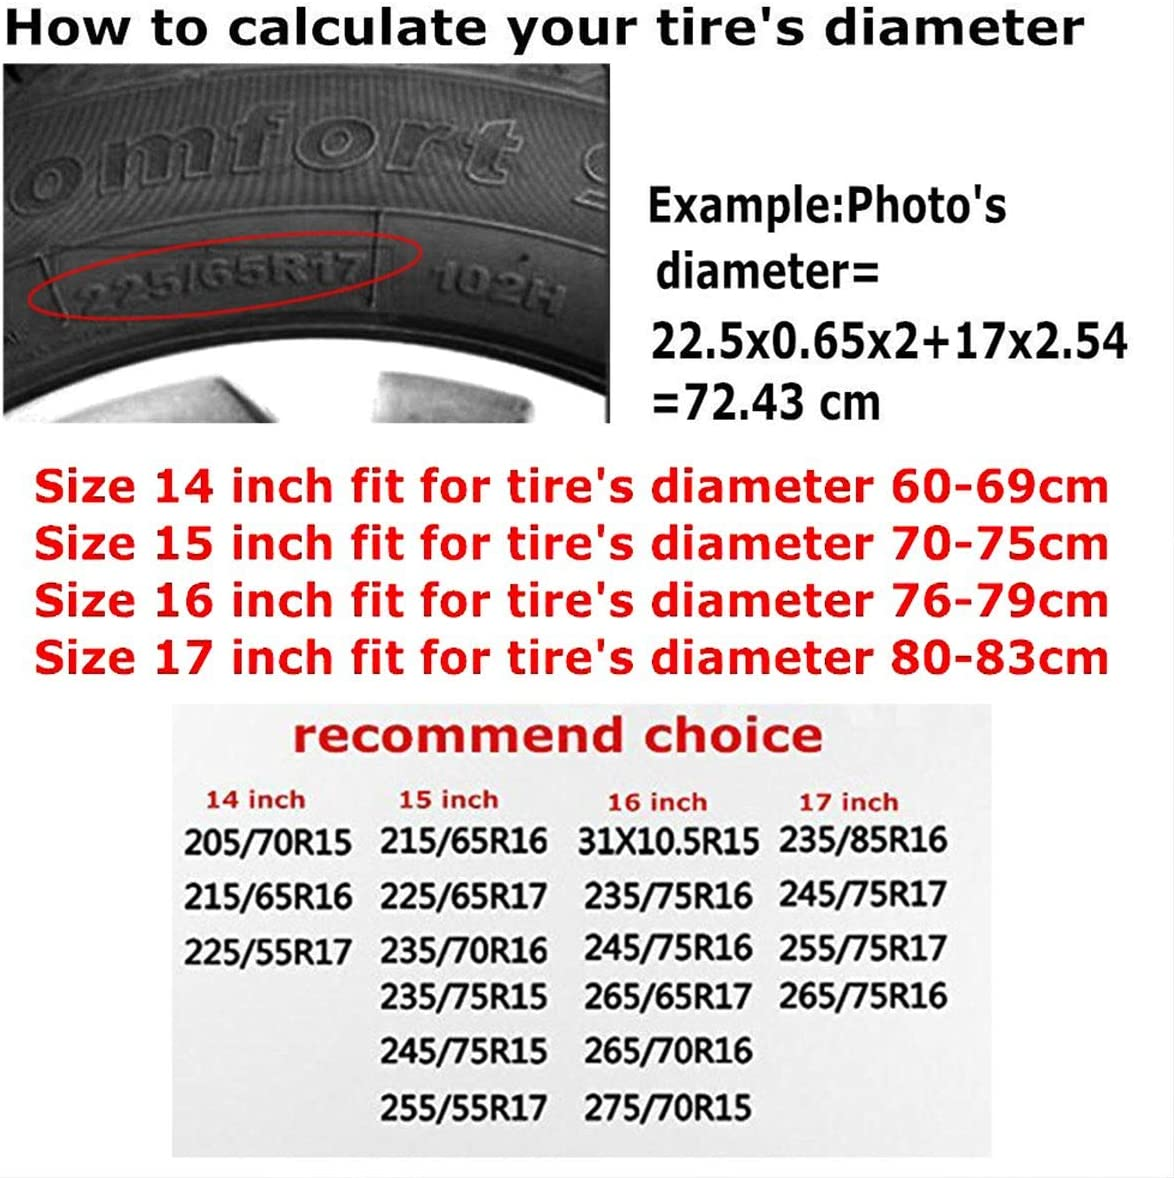 17 Inch for Diameter 31-33 SUV RV Truck and Many Vehicle Delerain Animal Horse Spare Tire Covers Waterproof Dust-Proof Spare Wheel Cover Universal Fit for Jeep Trailer